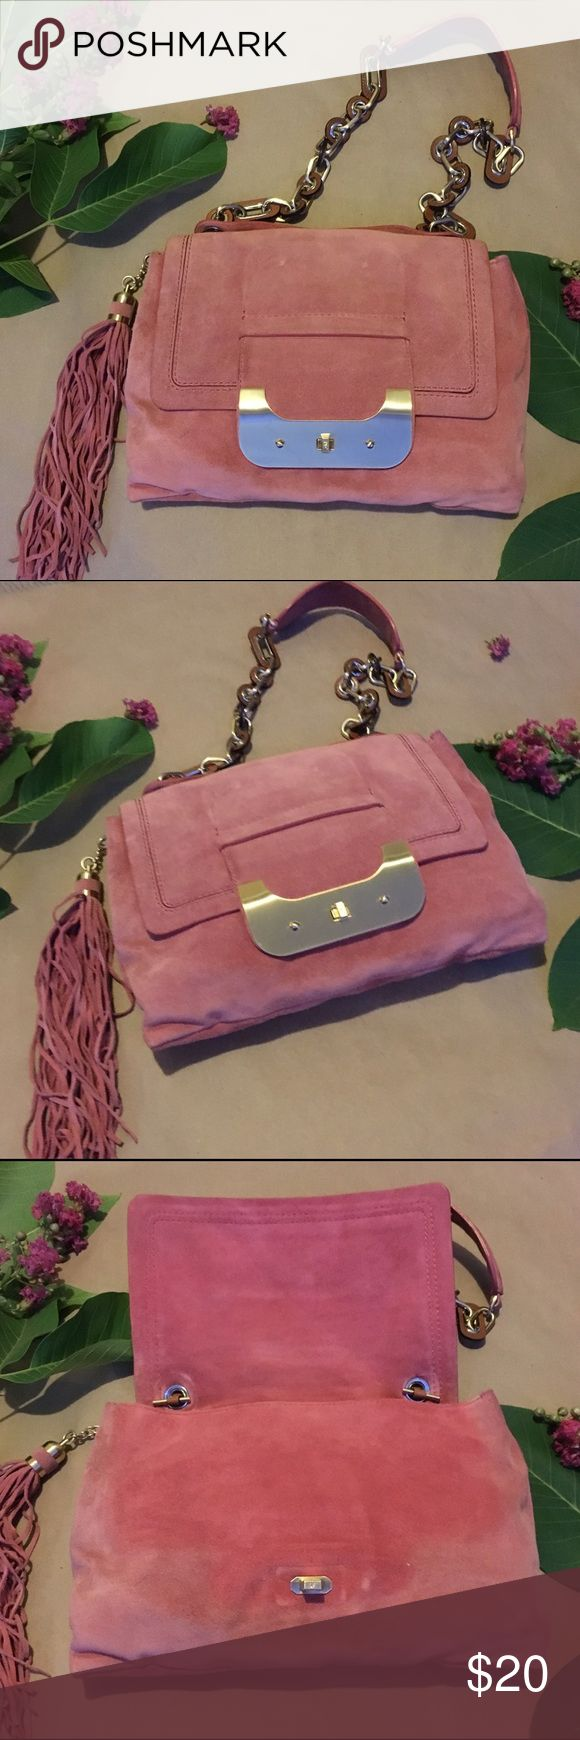 DVF Suede Harper Shoulder Bag Pre-loved DVF handbag. Bag needs cleaning & there is also fading as shown in the photos. Hardware has no scratches. Please comment if you have any questions. Diane von Furstenberg Bags Shoulder Bags